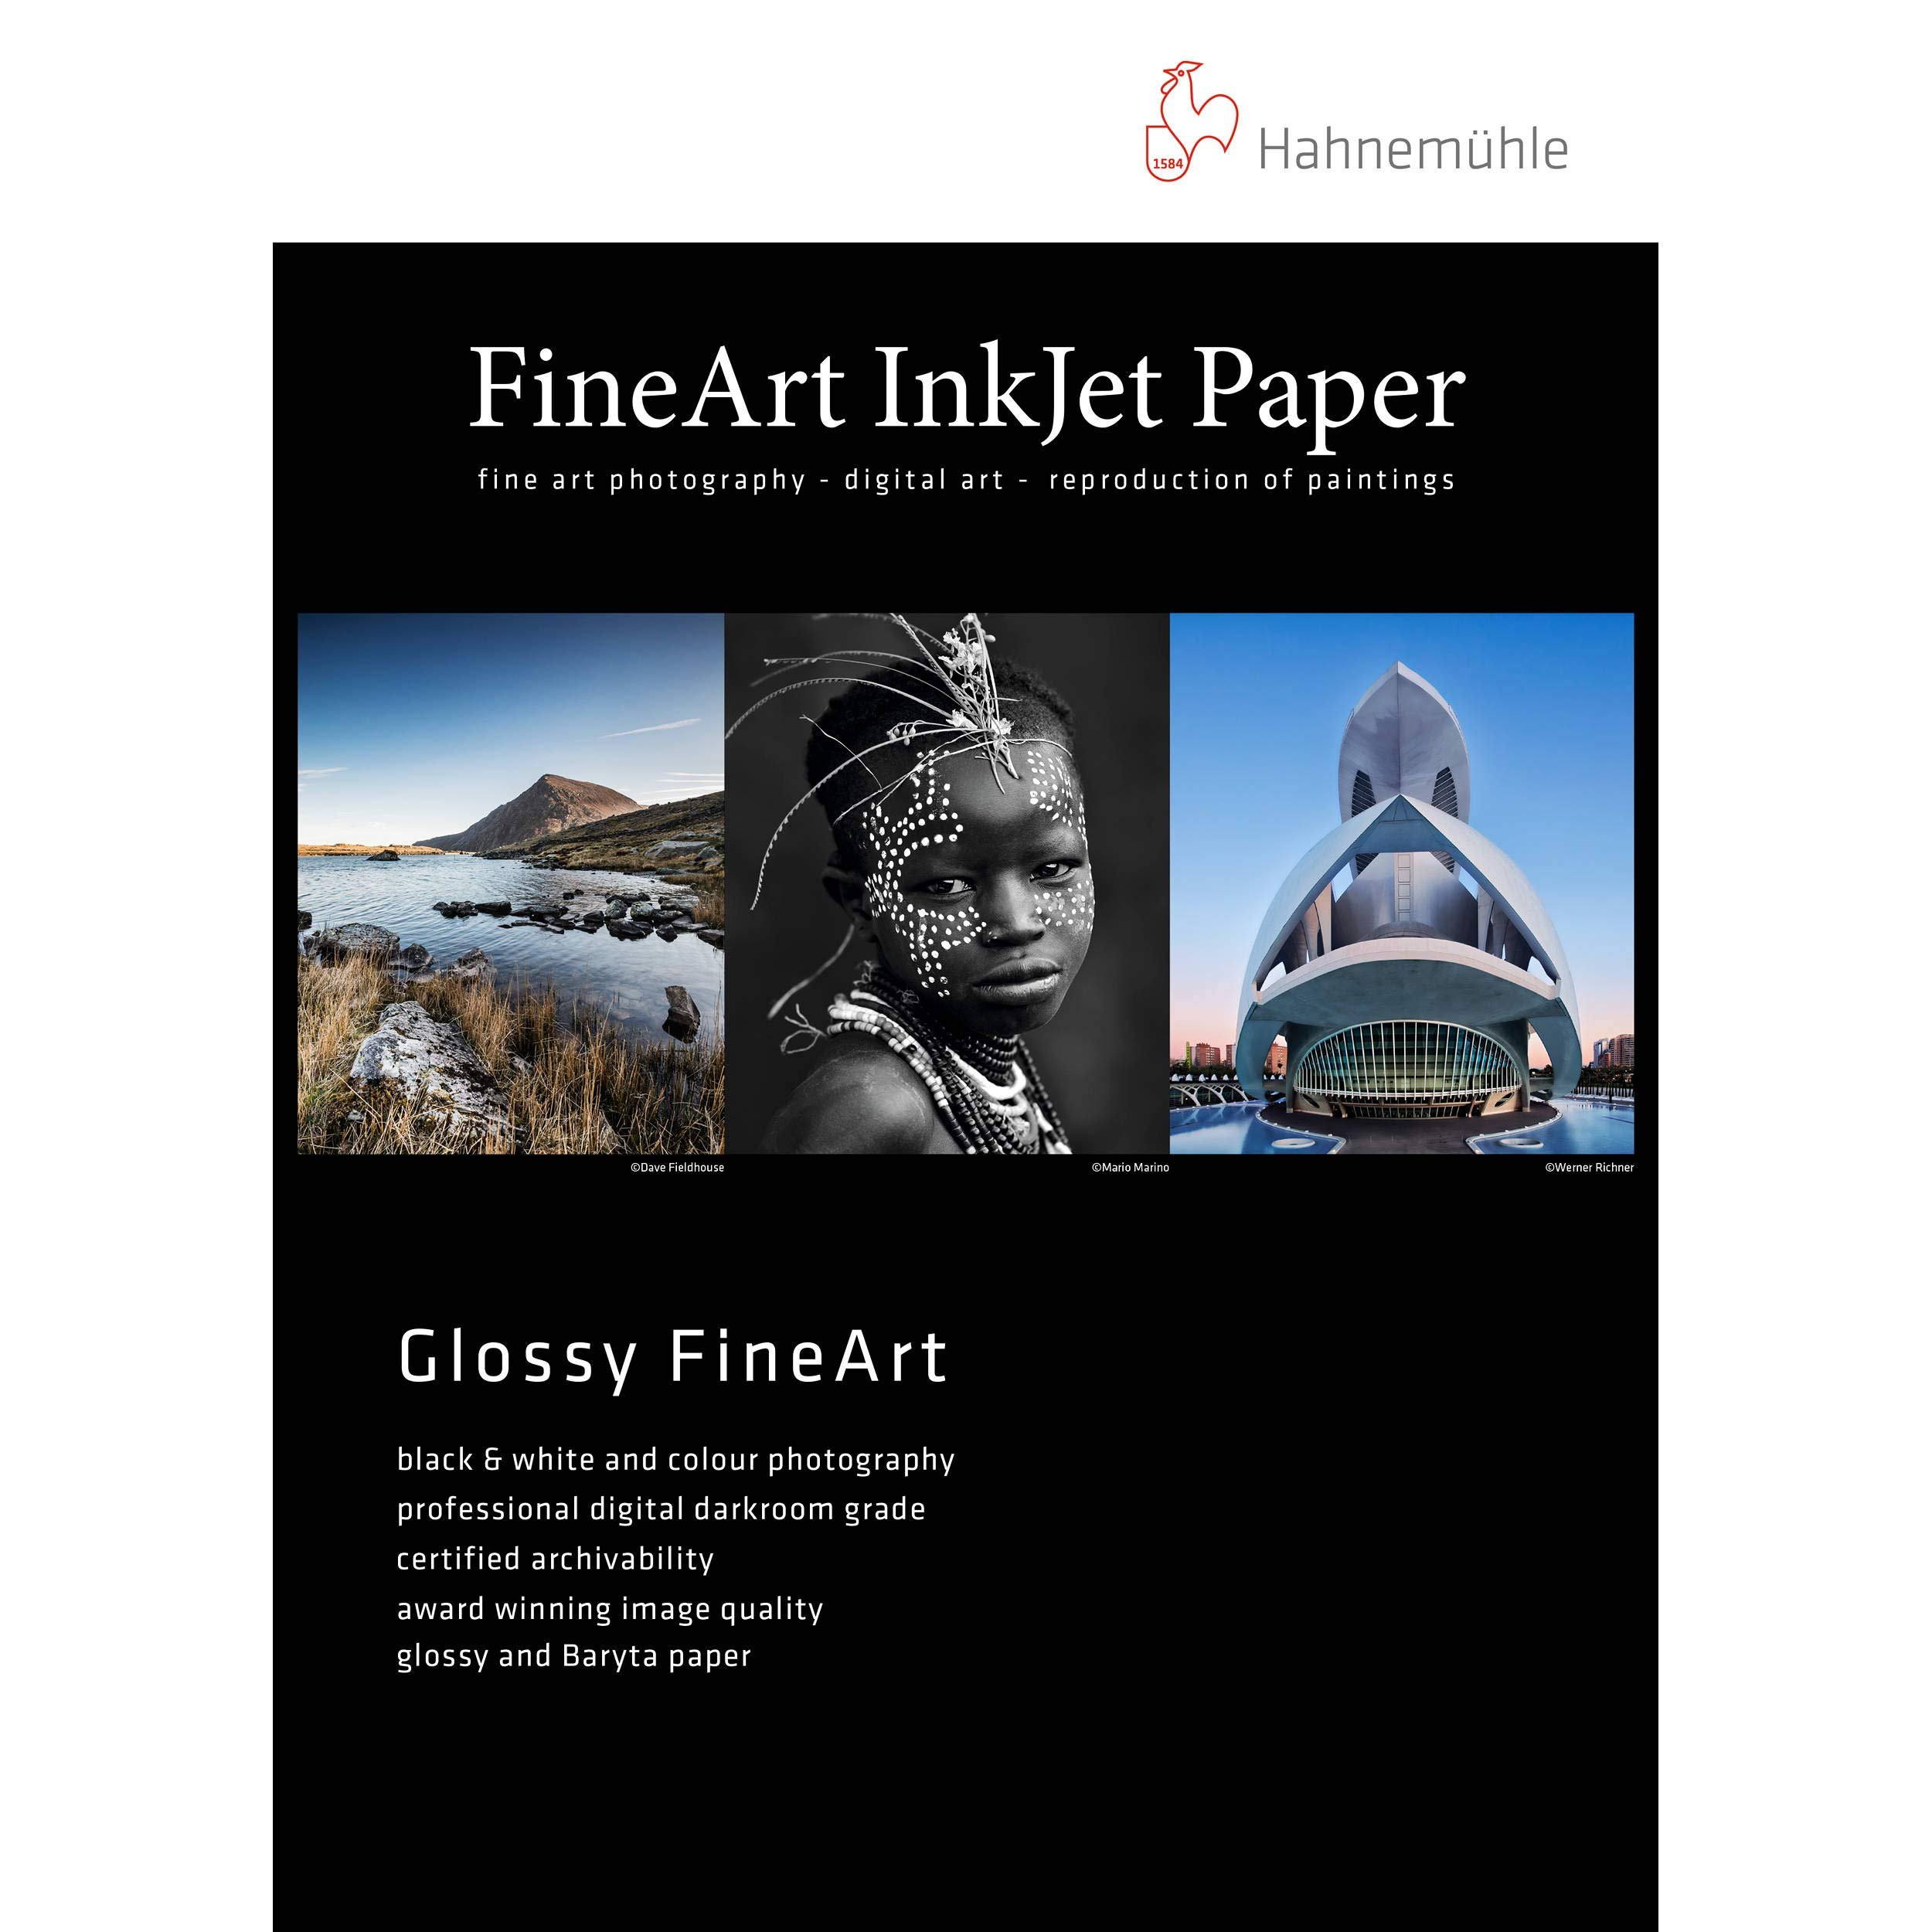 Hahnemuhle Fine Art Baryta 325, Ultra Smooth High Gloss, Bright White Inkjet Paper, 325gsm, 8.5x11'', 25 Sheets